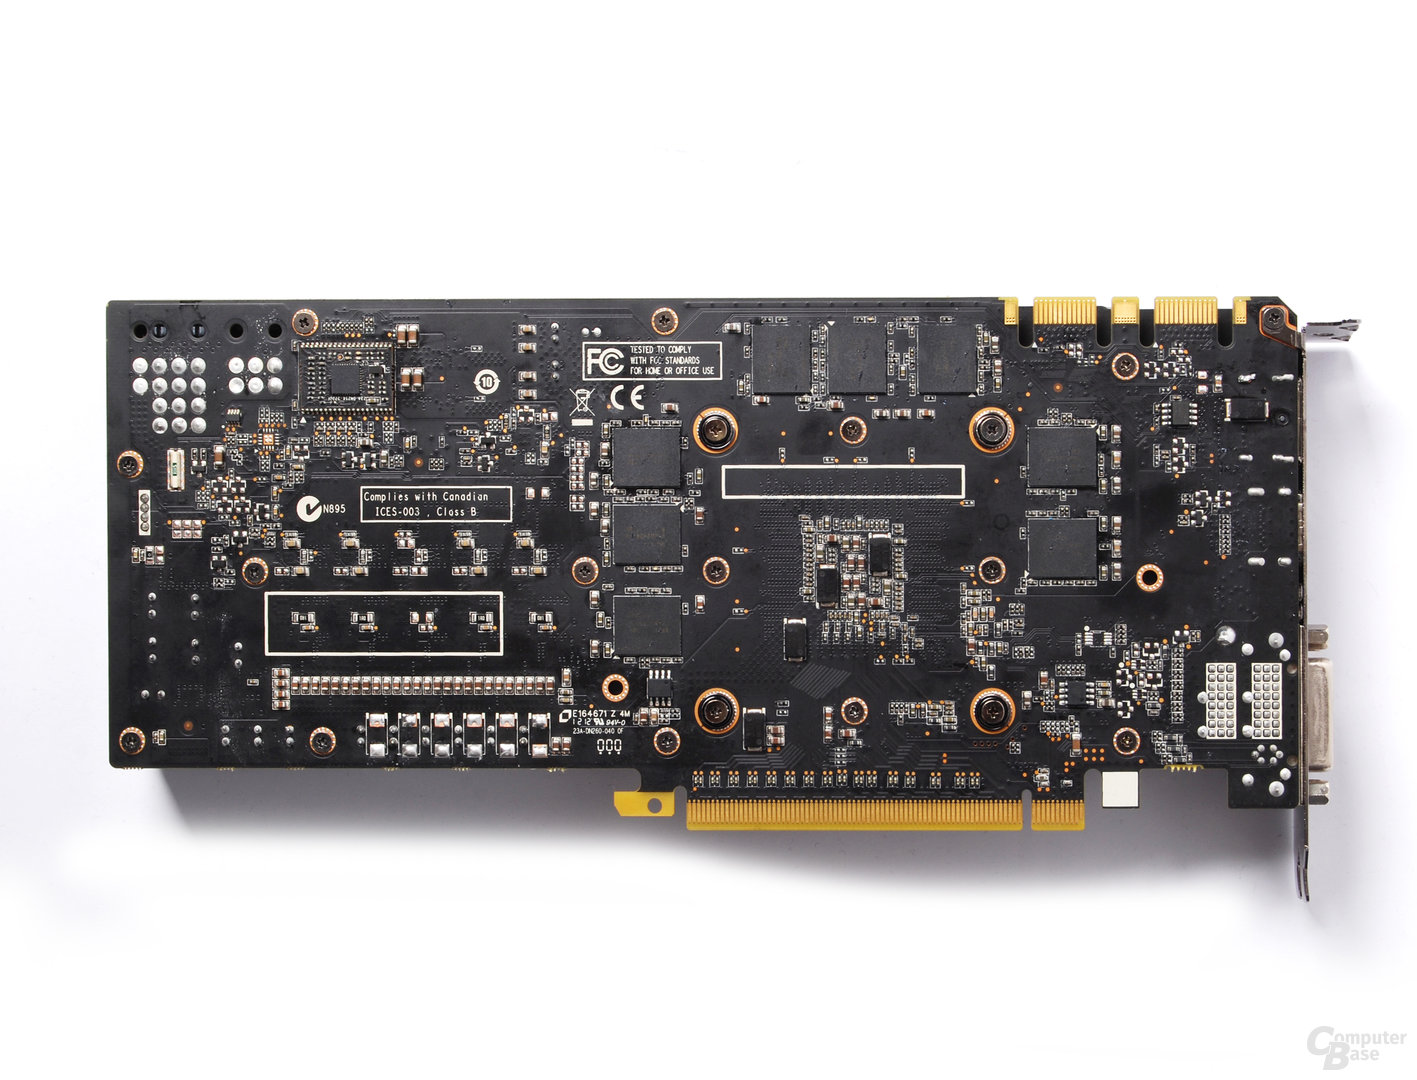 Zotac GeForce GTX 680 4 GByte